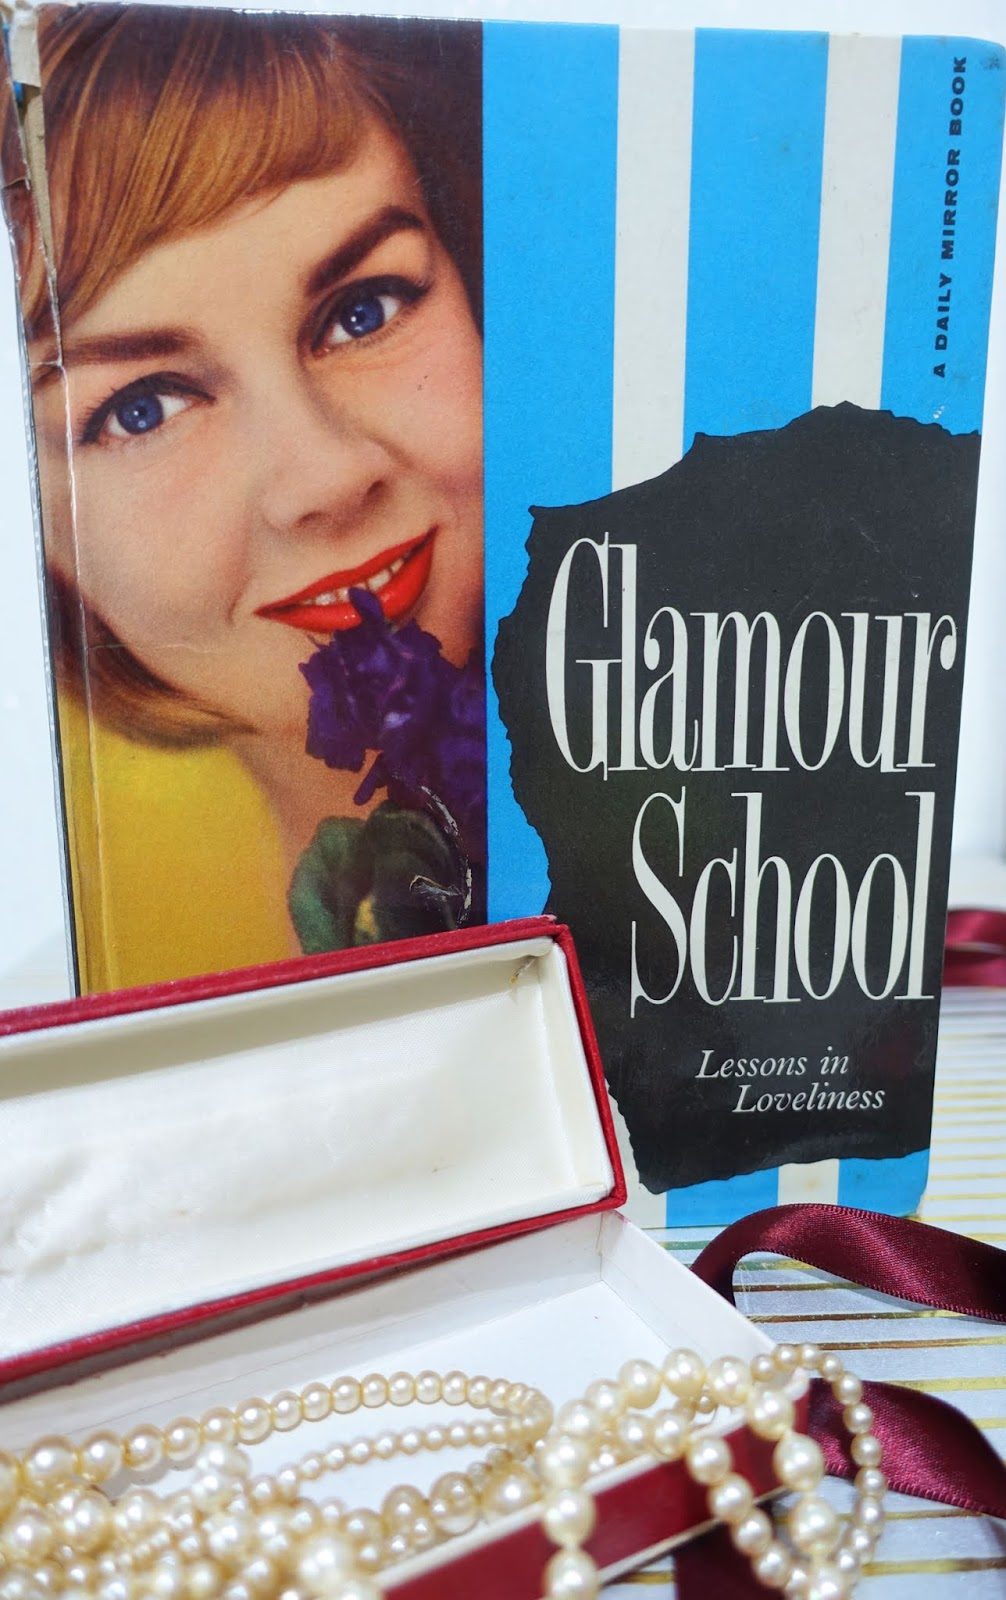 Glamour School, a beauty book dating from 1957, still has very relevant guidance and know-how today